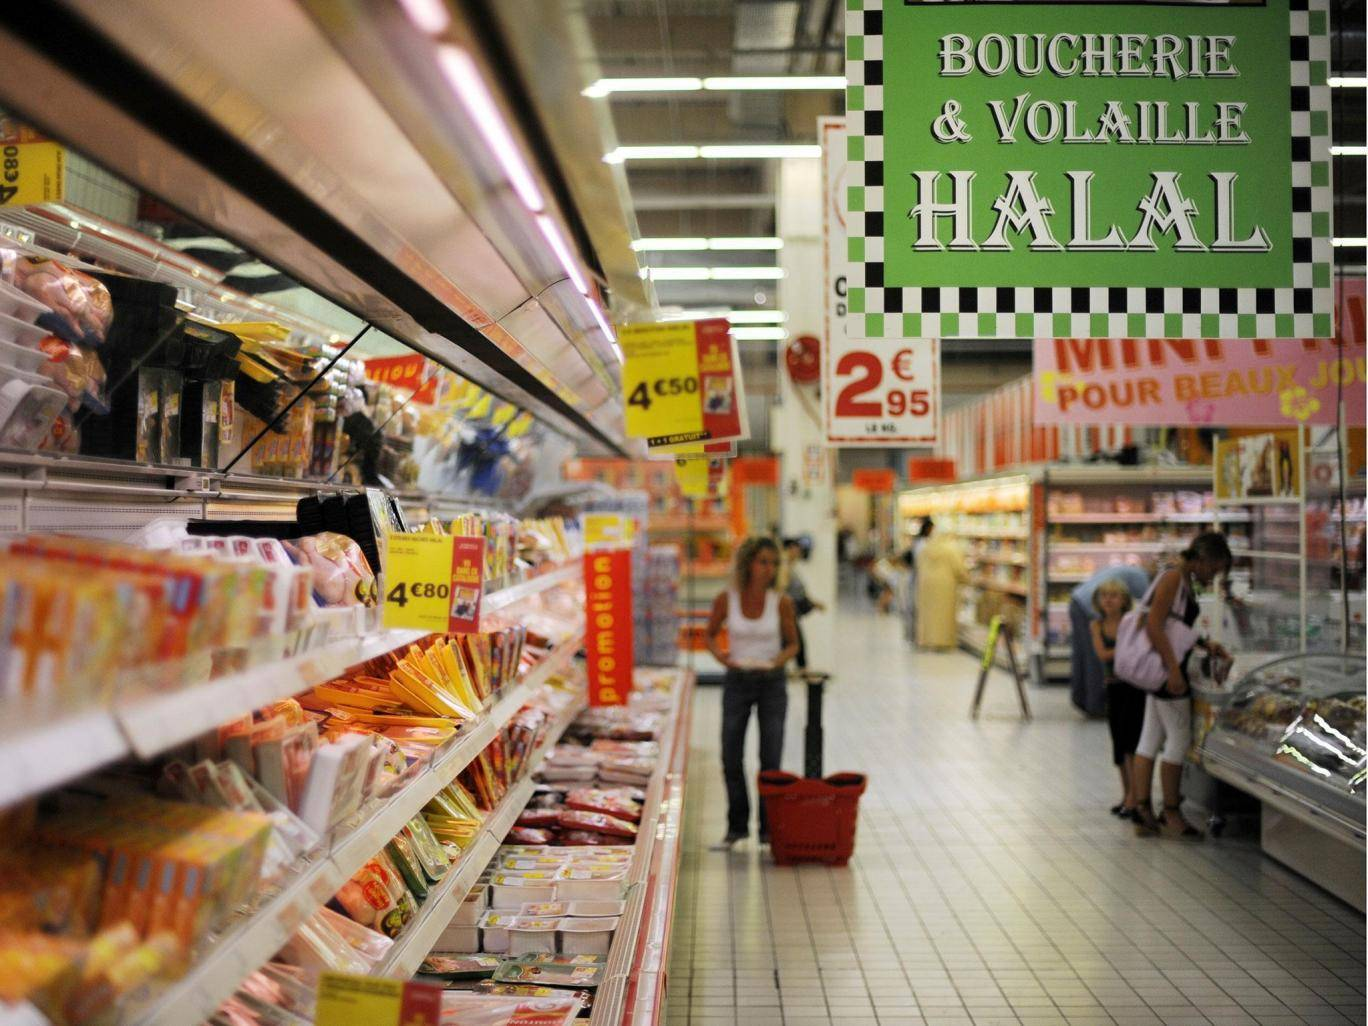 France orders halal supermarket shut for not selling pork and alcohol